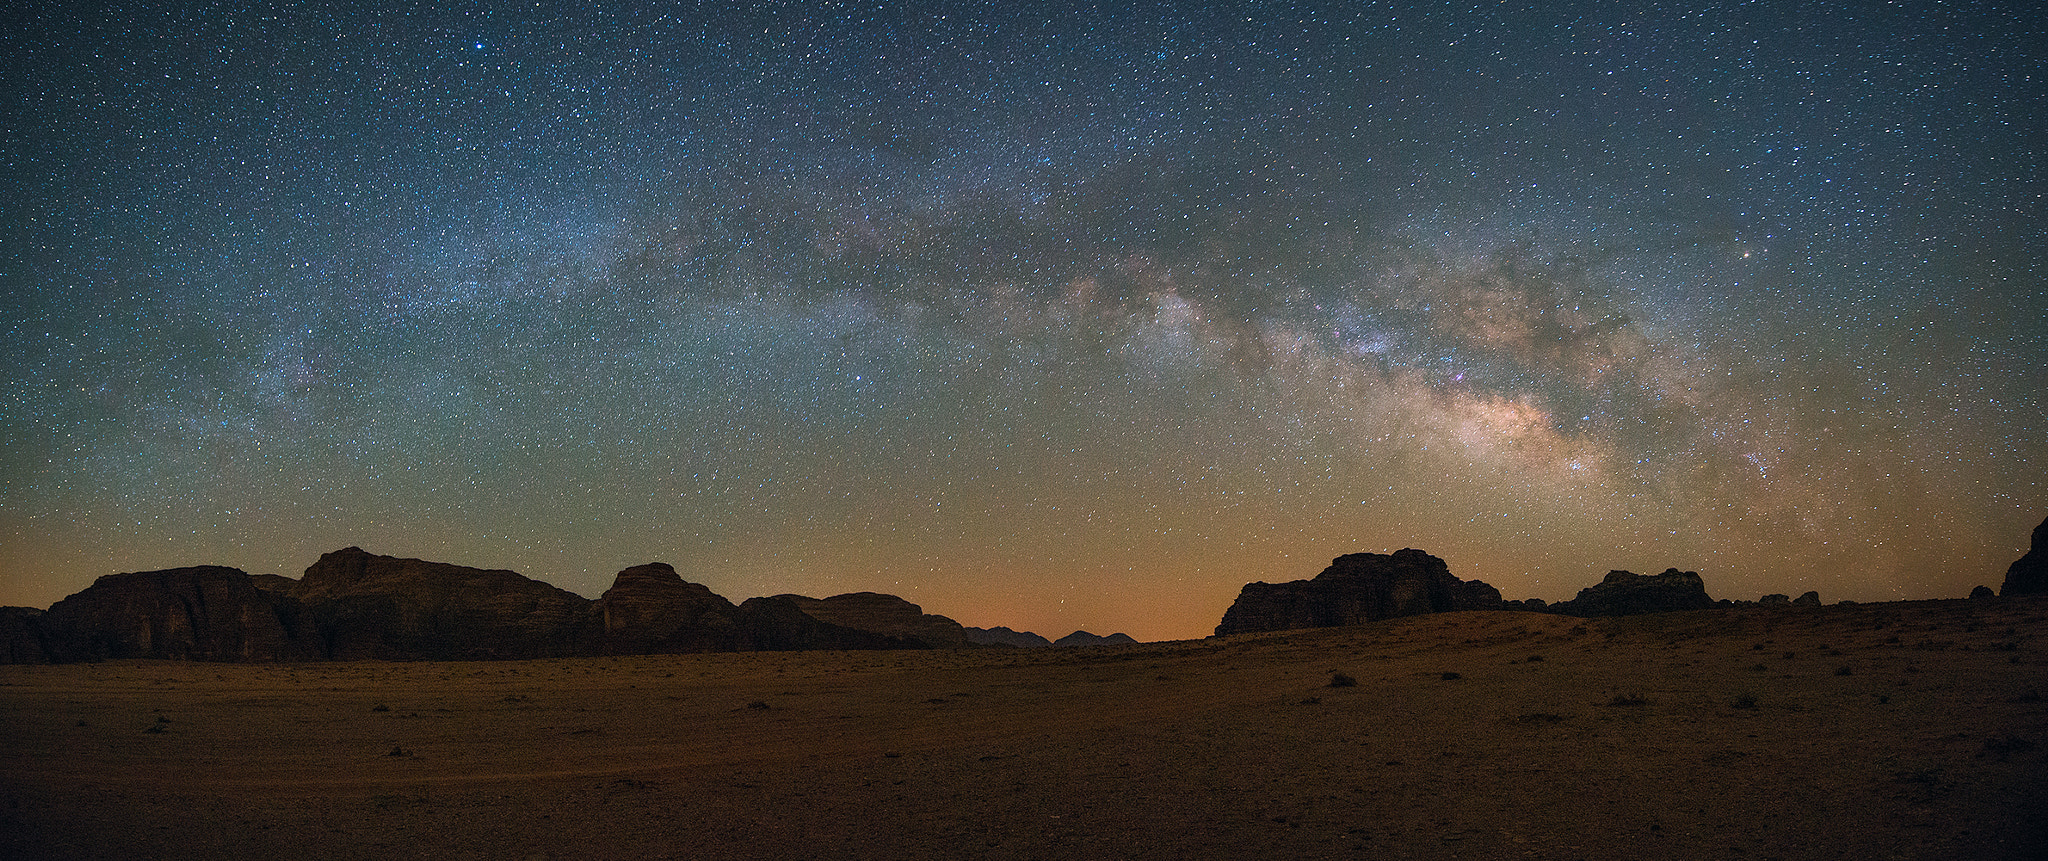 Photograph Milkyway by Christian von Travelography on 500px